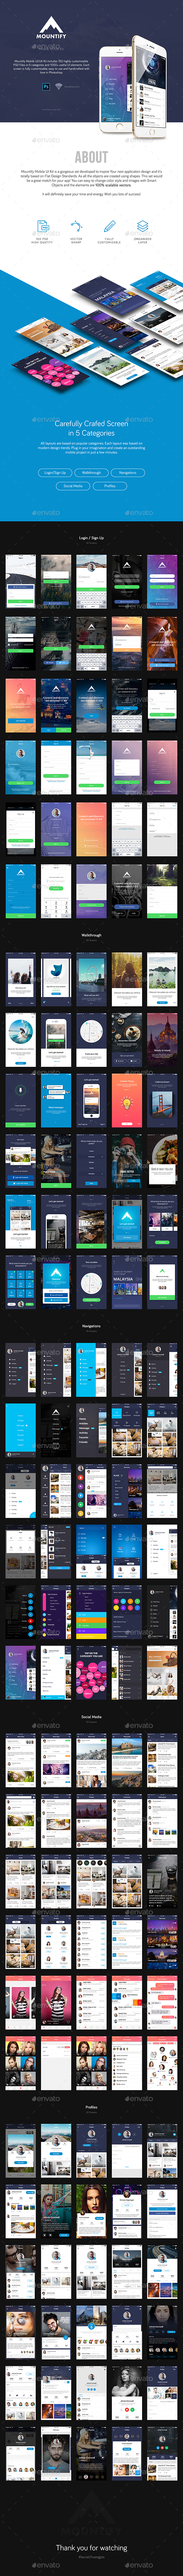 Mountify Mobile UI Kit (User Interfaces)